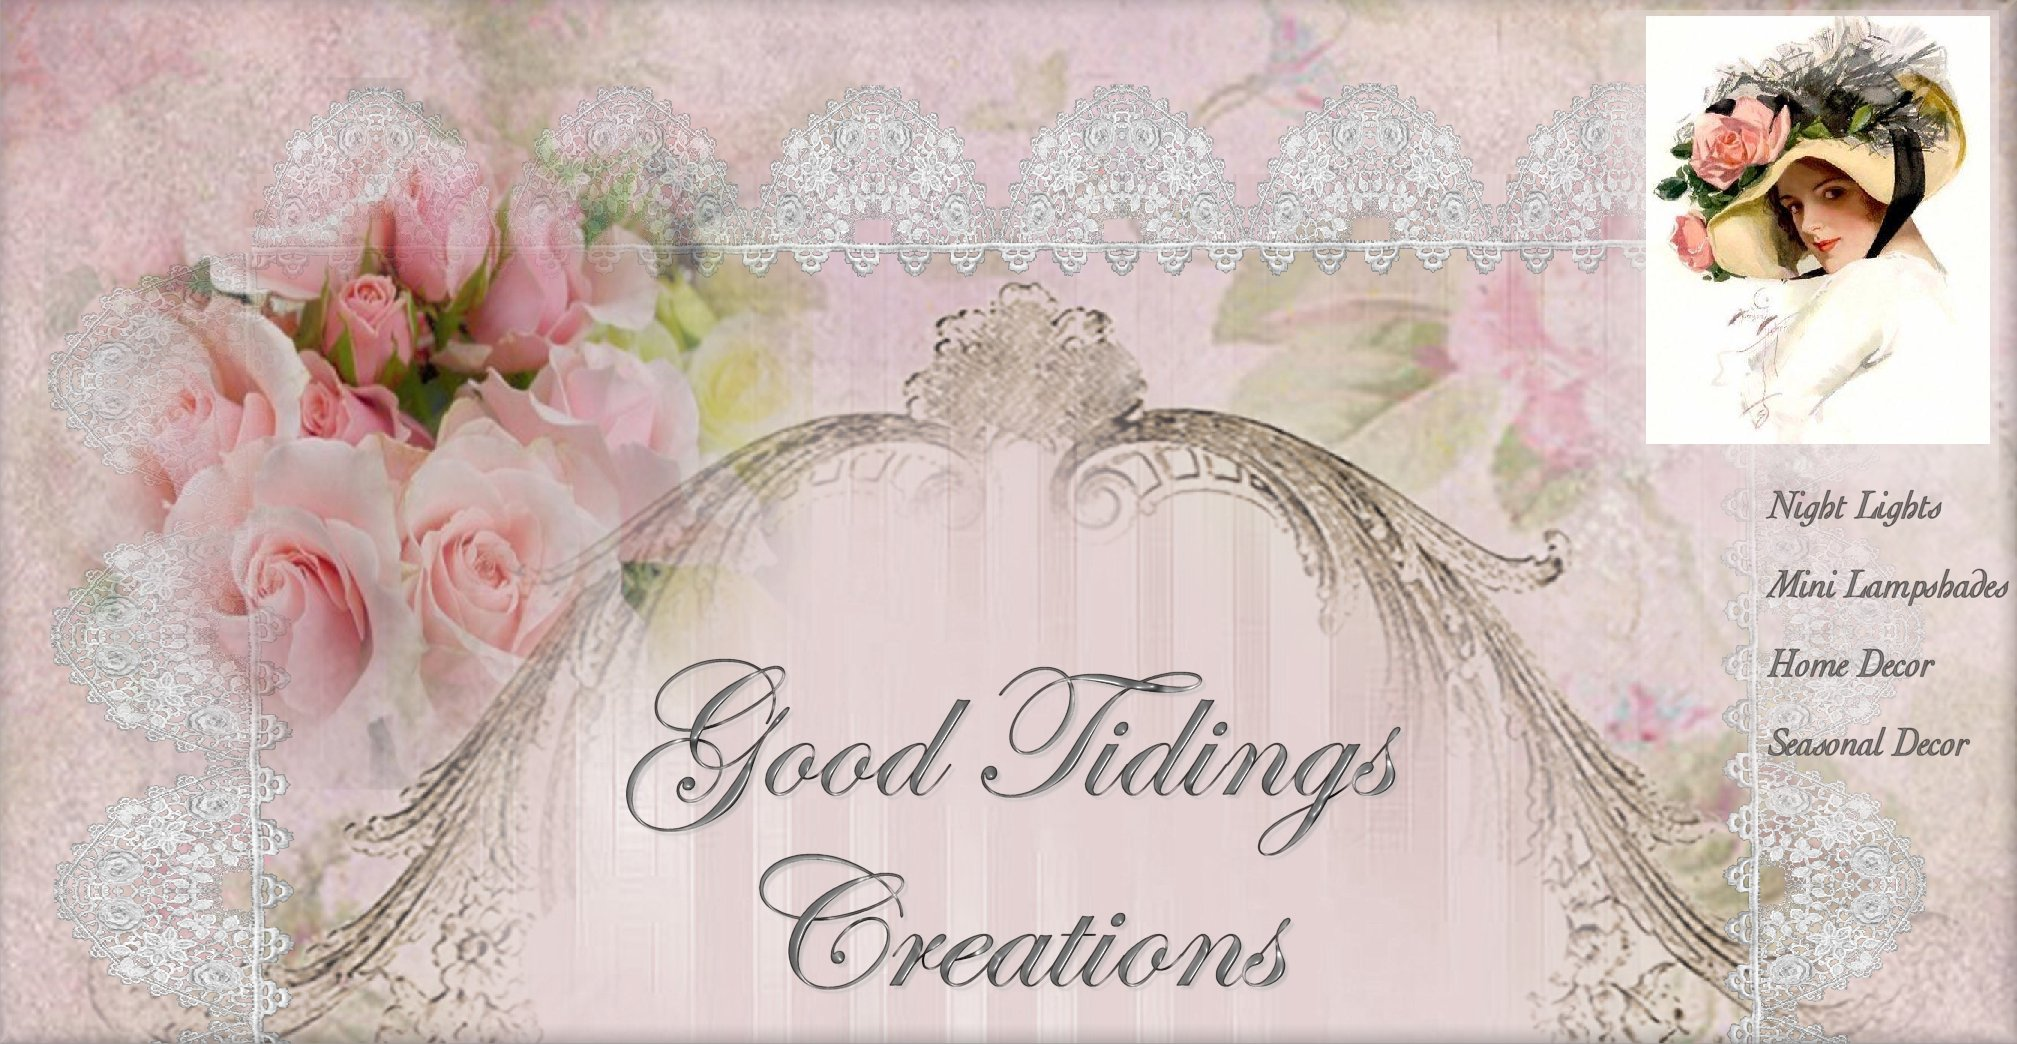 Good Tidings Creations